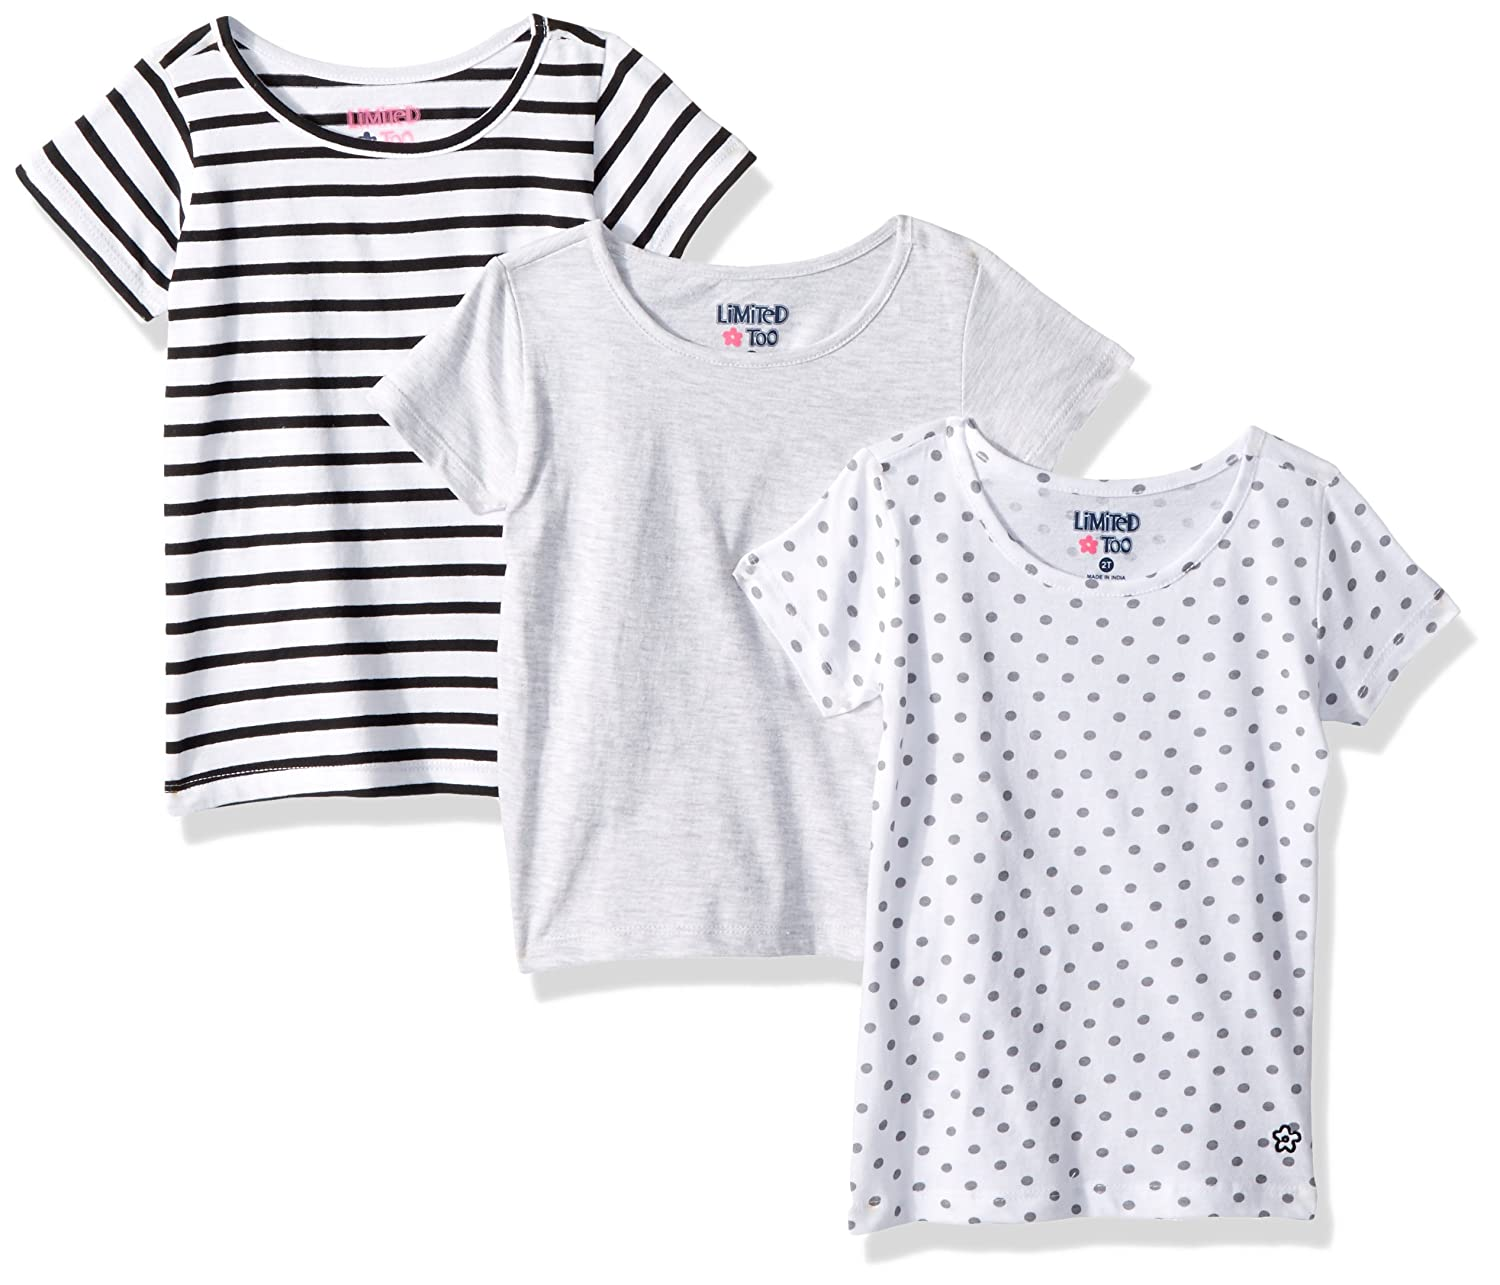 Limited Too Girls 3 Pack T-Shirt